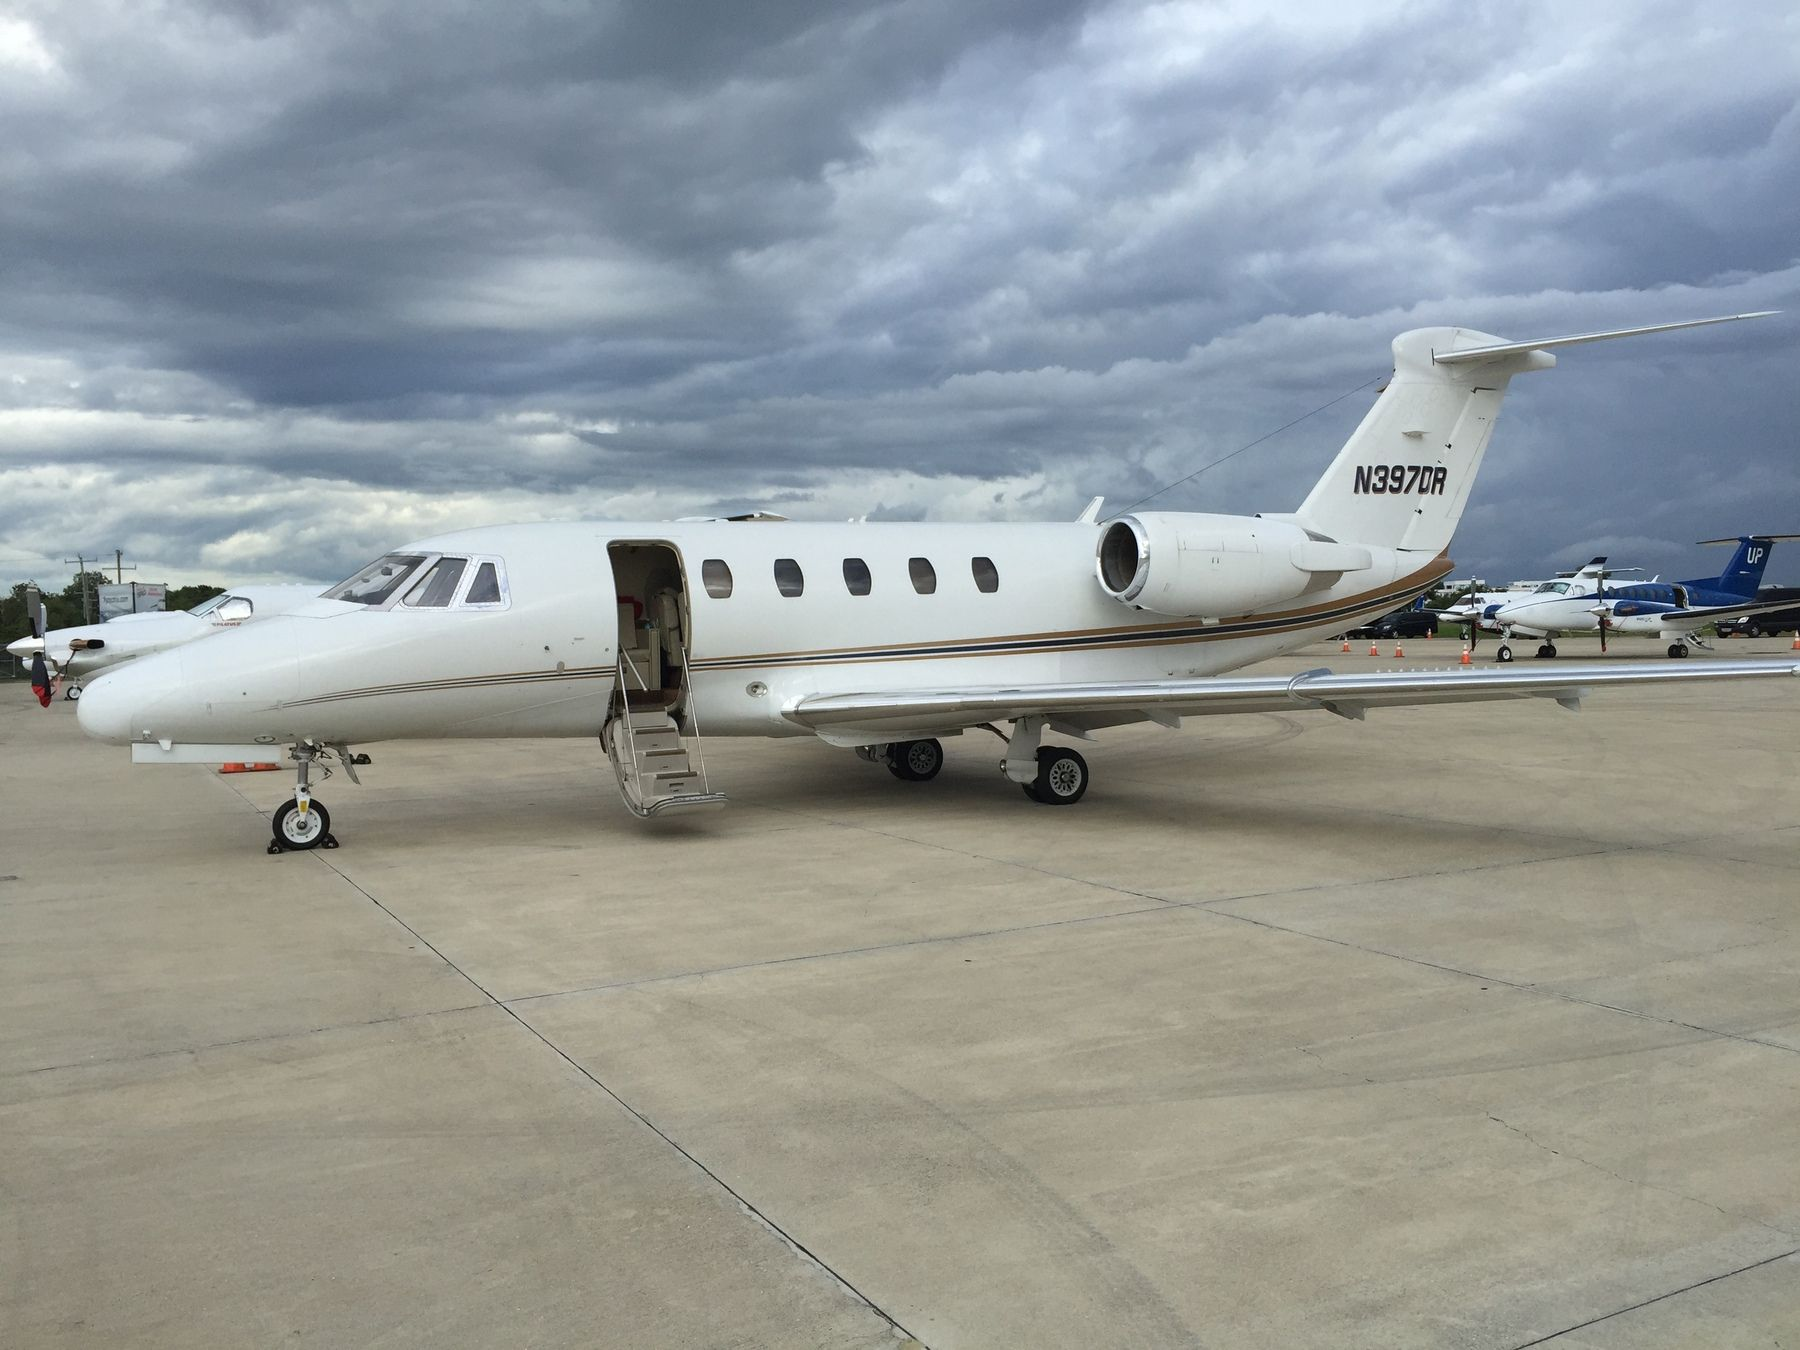 1986 Cessna 650 Citation Iii For Sale In The United States Www Airplanemart Com Aircraft For Sale Business Corporate Jet 1986 Cessna 650 Citation Iii 13 Jatos